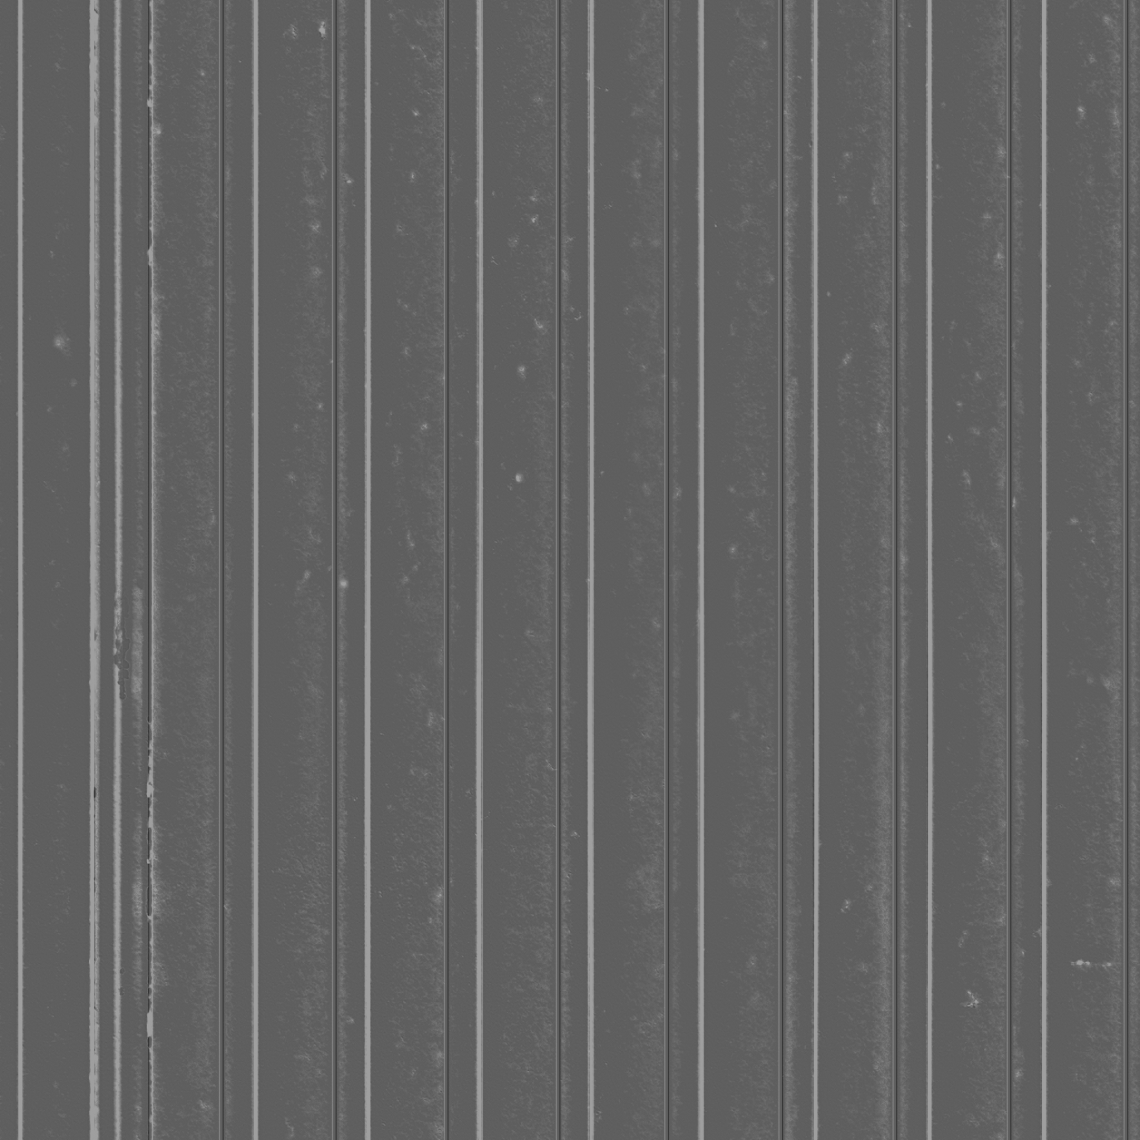 Corrugated-Metal-01-Roughness